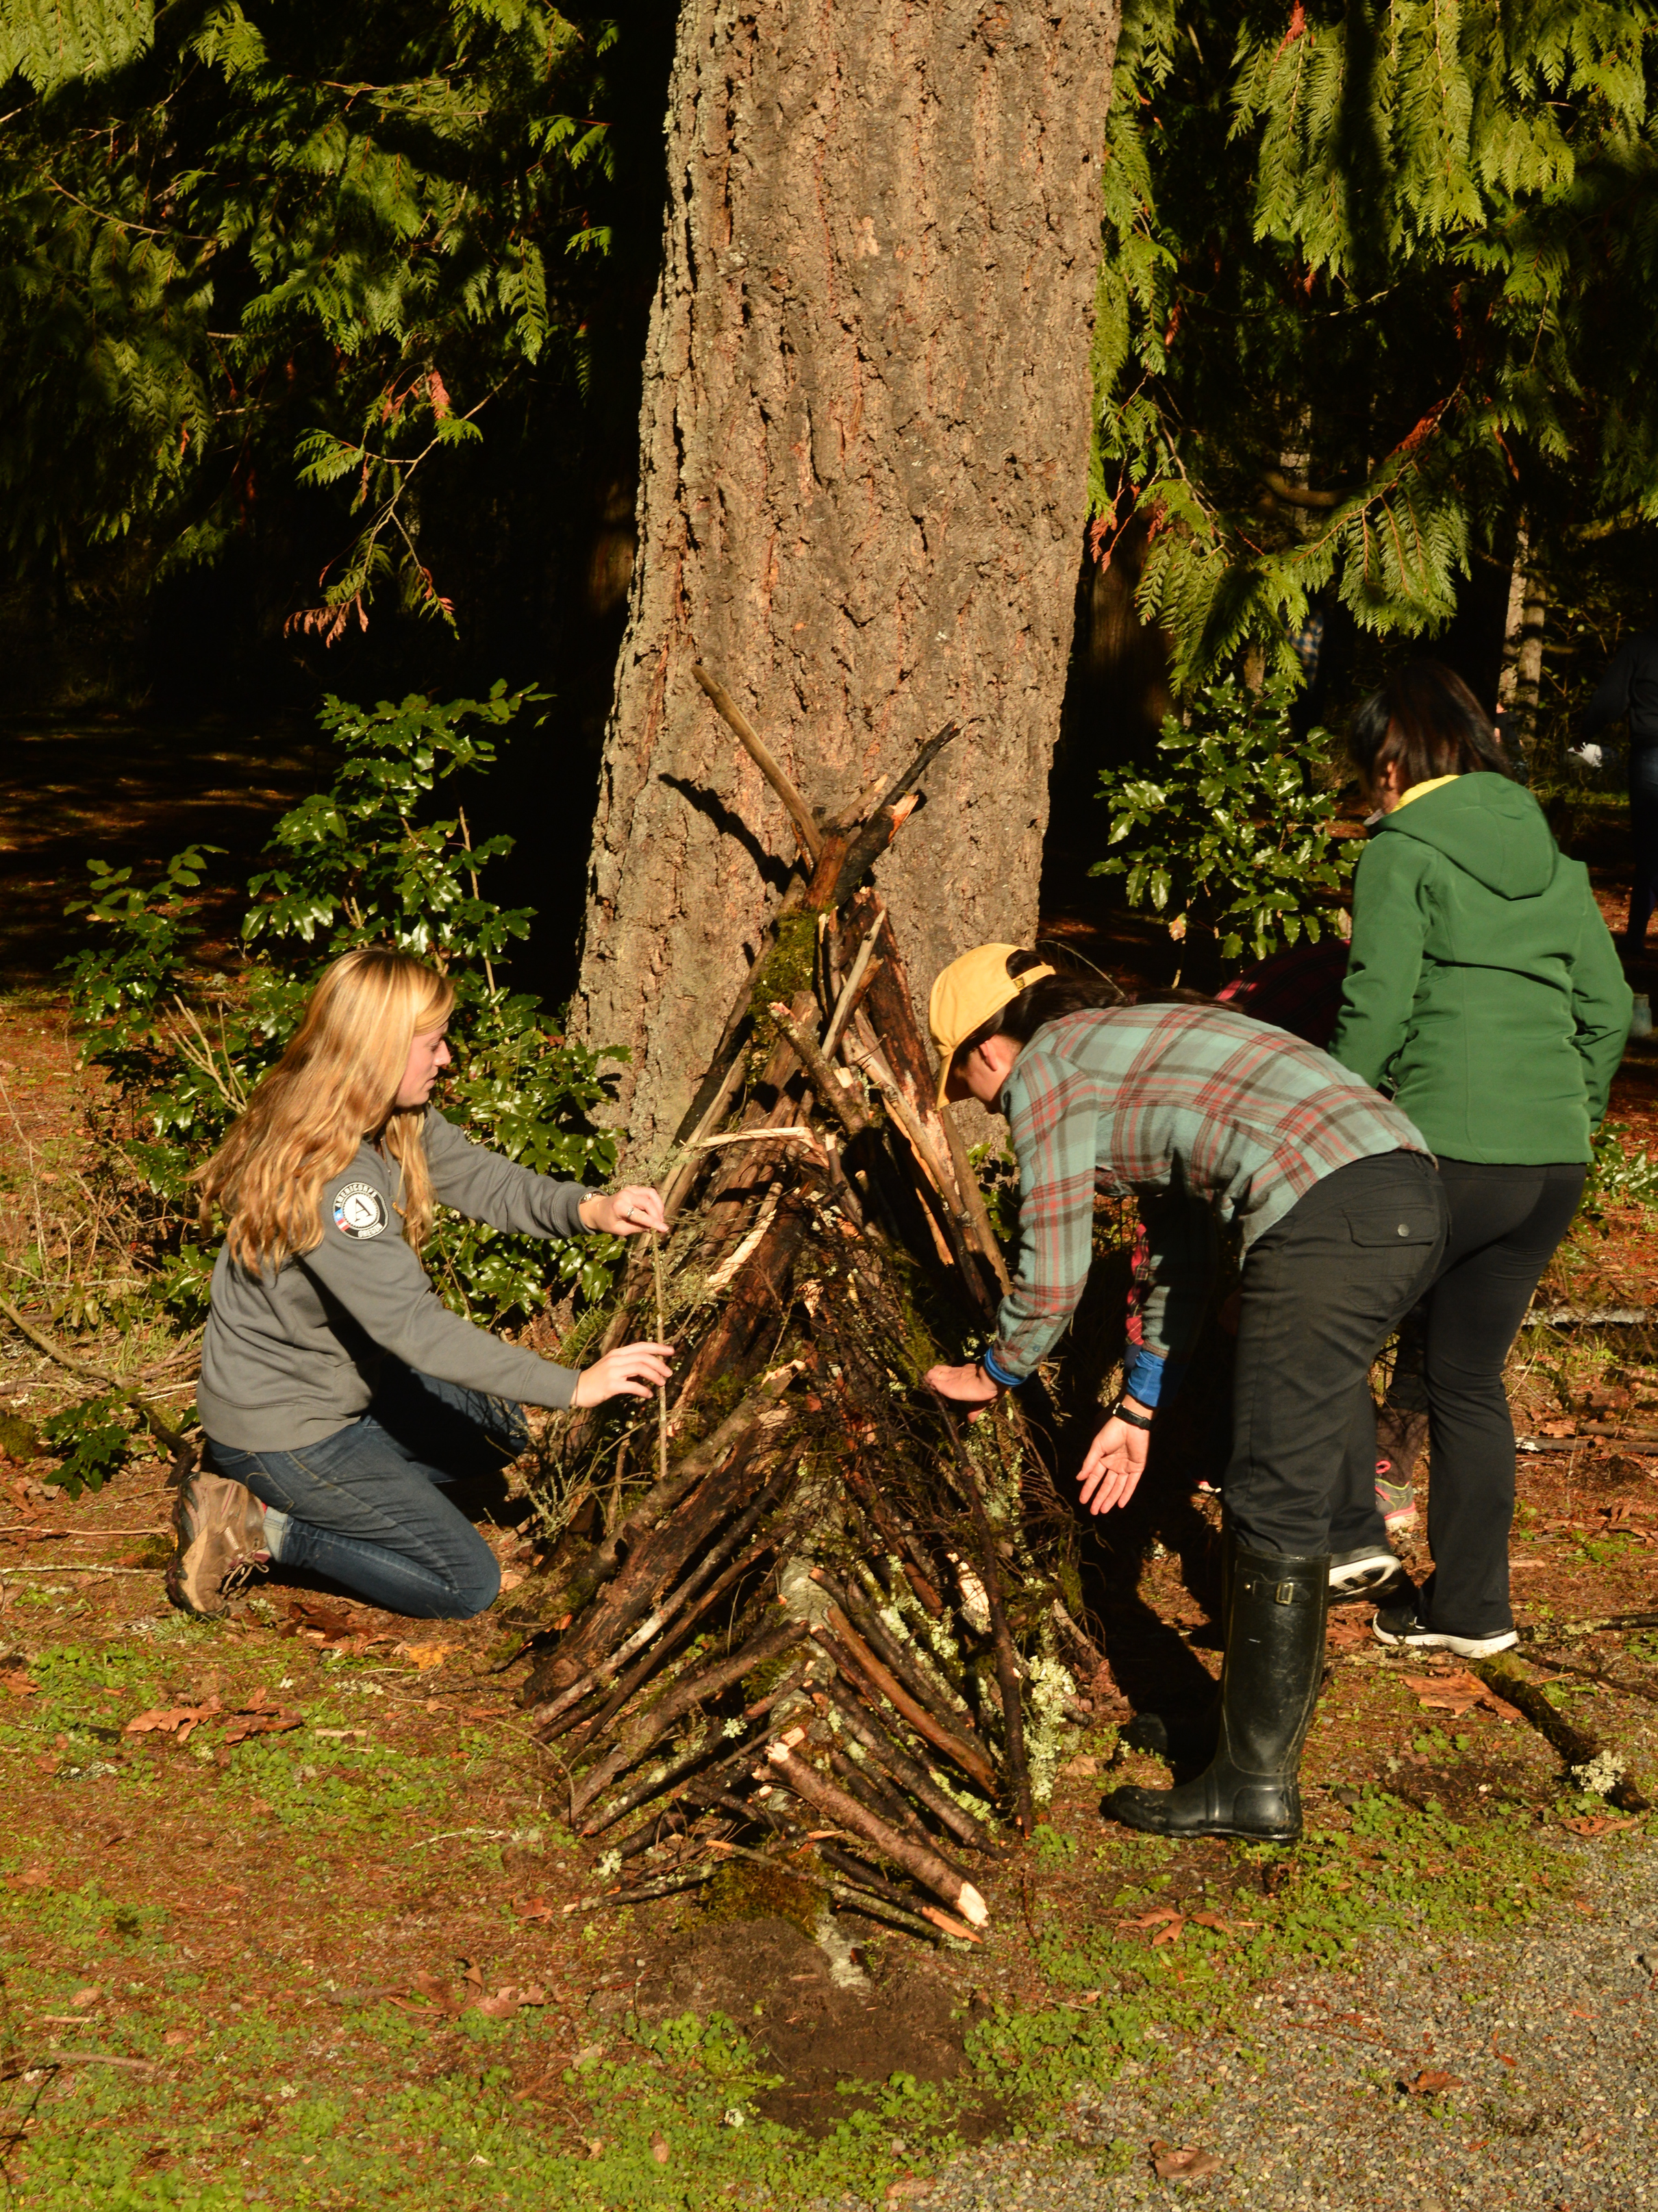 The beginning stages of an emergency leaf shelter